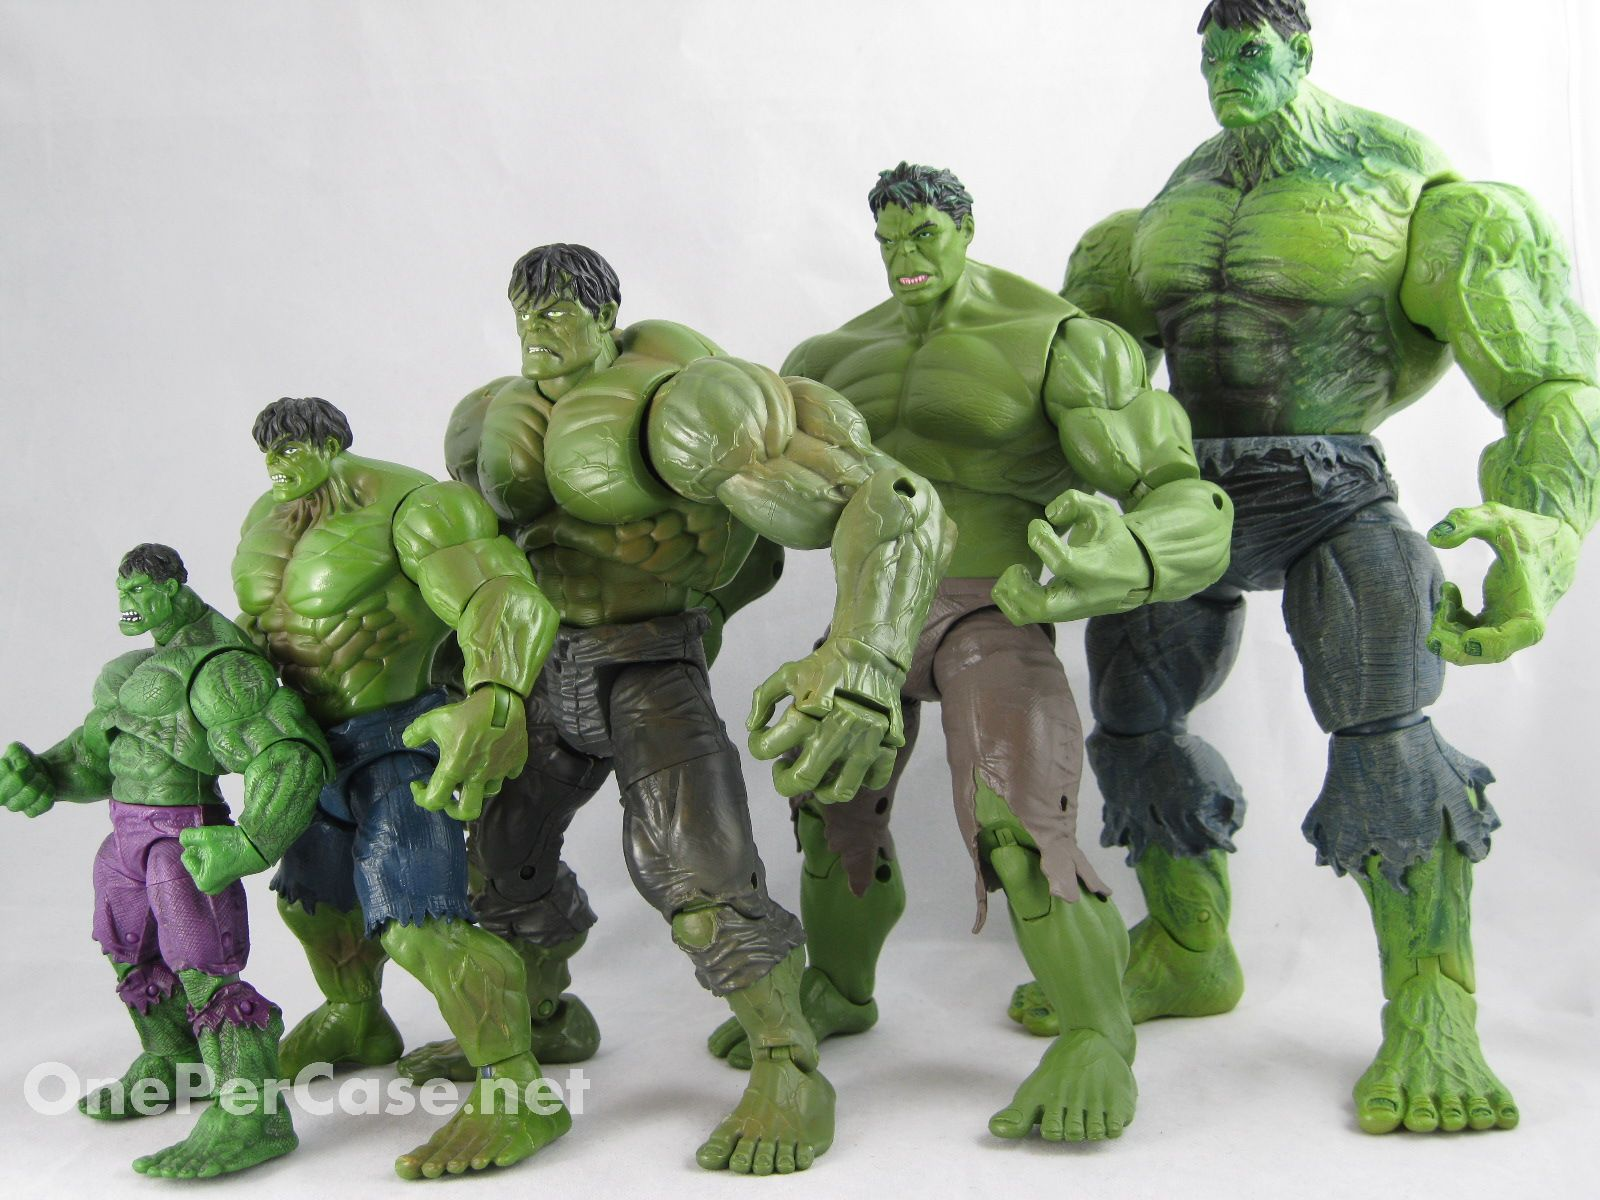 One Per Case: Marvel Select - Unleashed Hulk Disney Store Exclusive